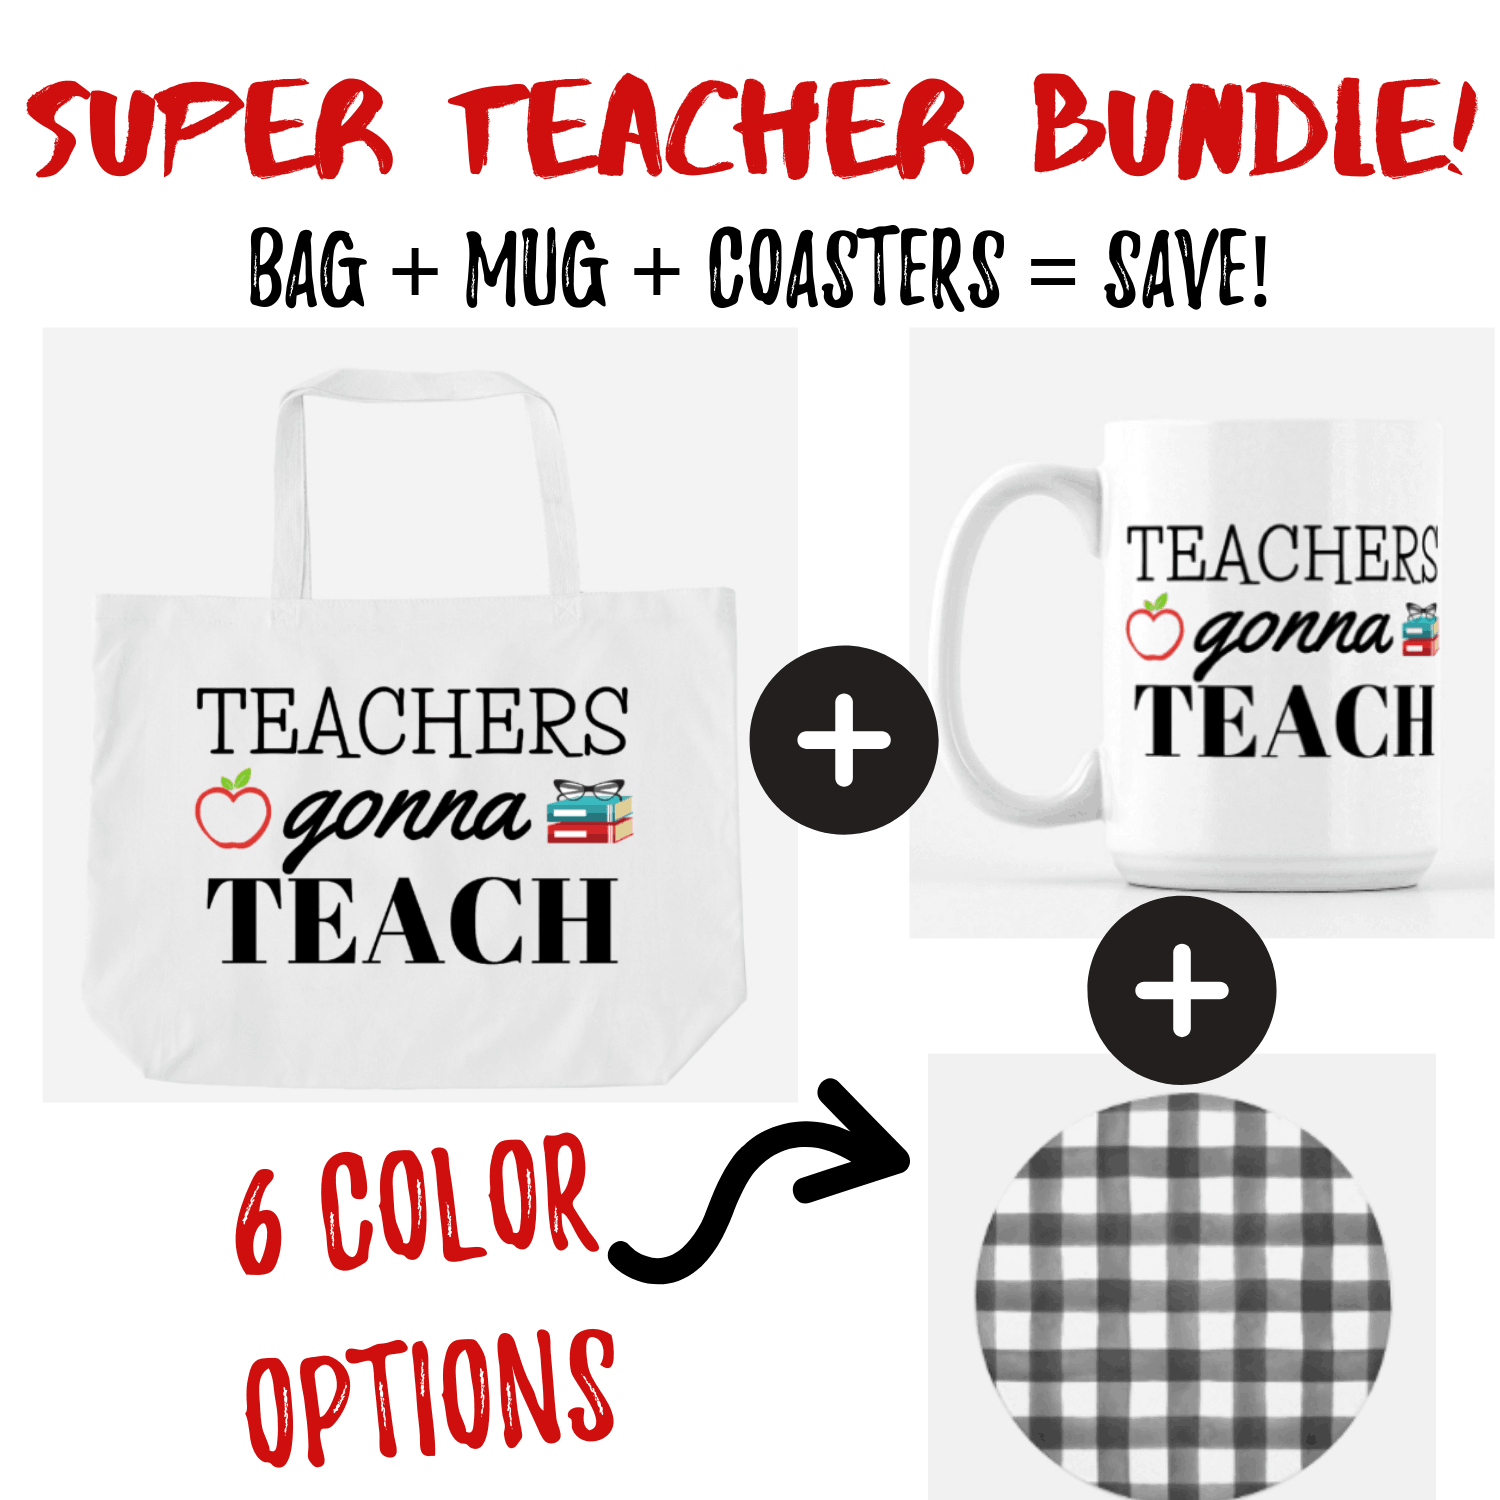 teacher-gift-ideas, gift ideas for teachers, affordable teacher gifts, teacher gift bundles, creative teacher gift ideas, teacher coffee mug, teacher bag, tote bag for teachers, teacher lesson plan books, teacher notebooks